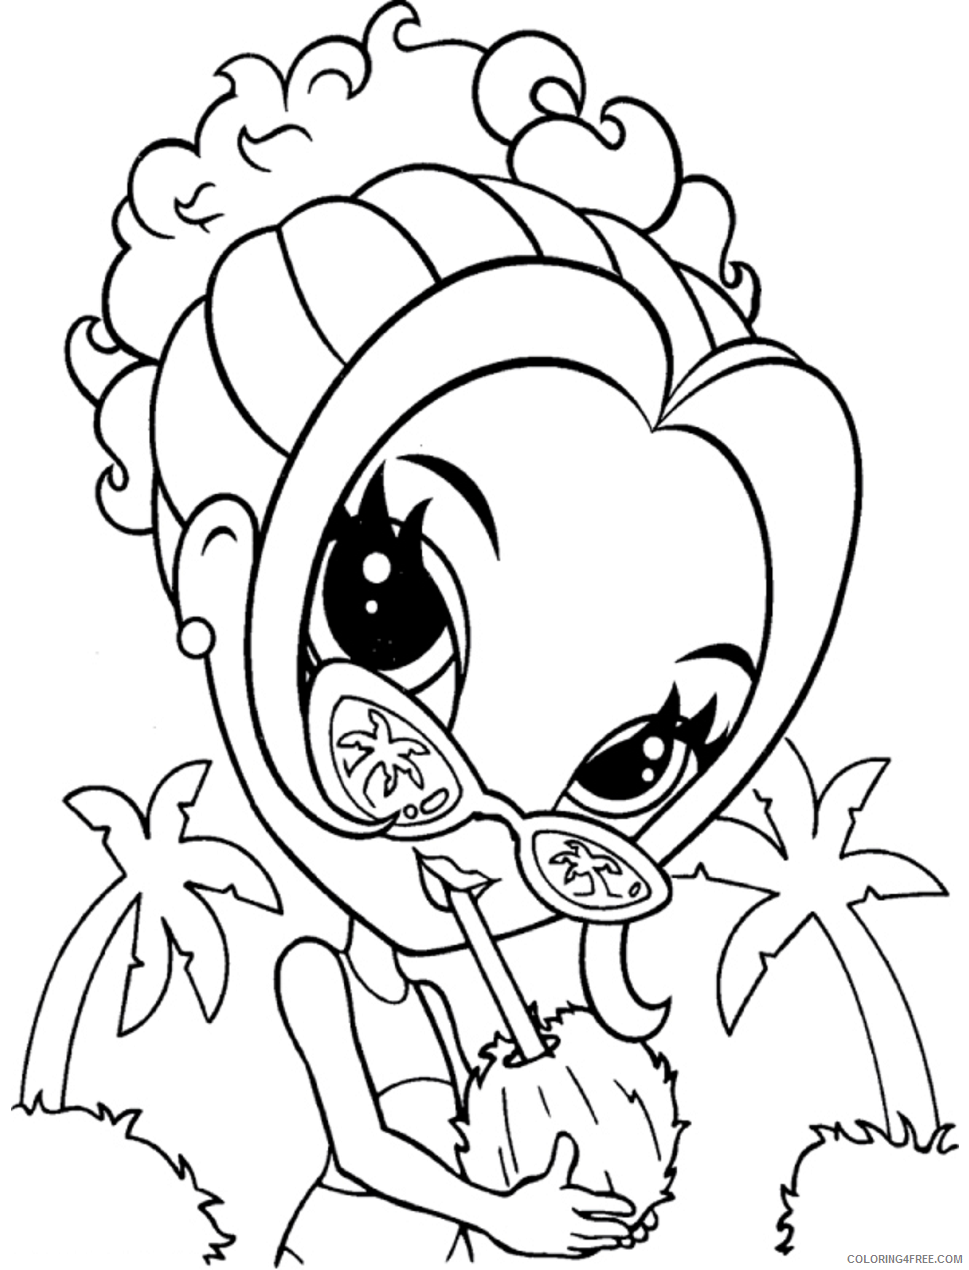 Lisa Frank Coloring Pages lisa_frank_girl_drinking_coconut_water Printable 2021 3861 Coloring4free